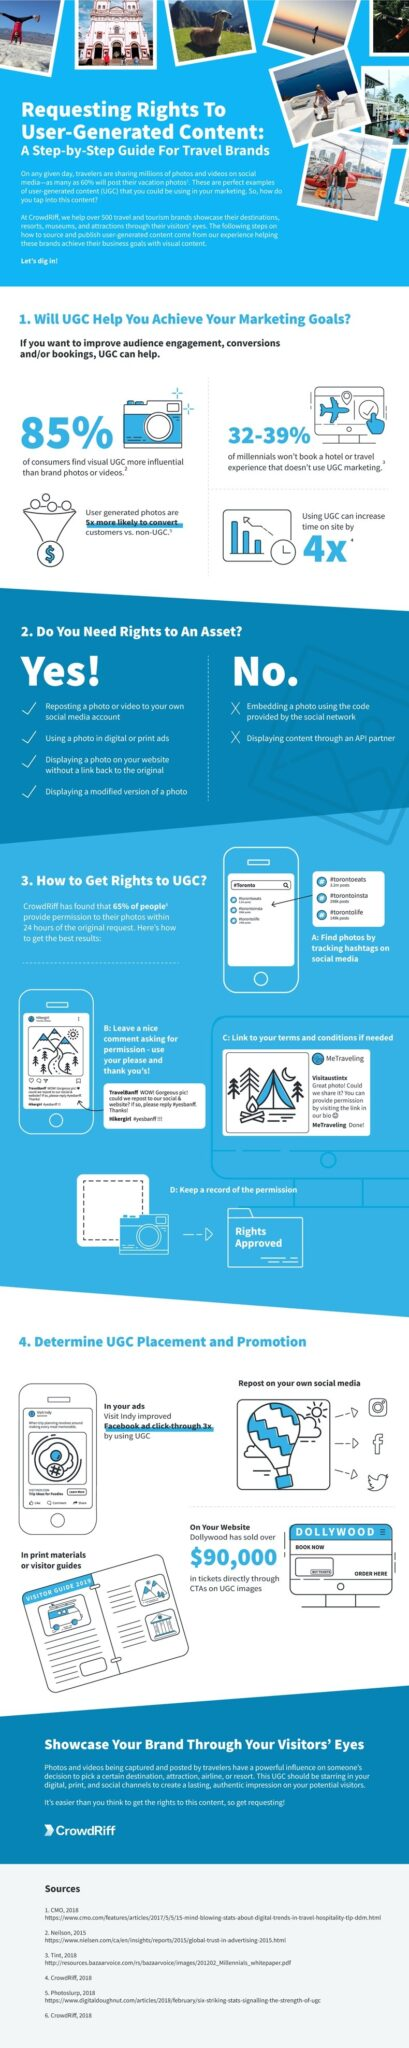 Requesting Rights to User-Generated Content: A Guide for Travel Brands (and Others) [Infographic] : MarketingProfs Article